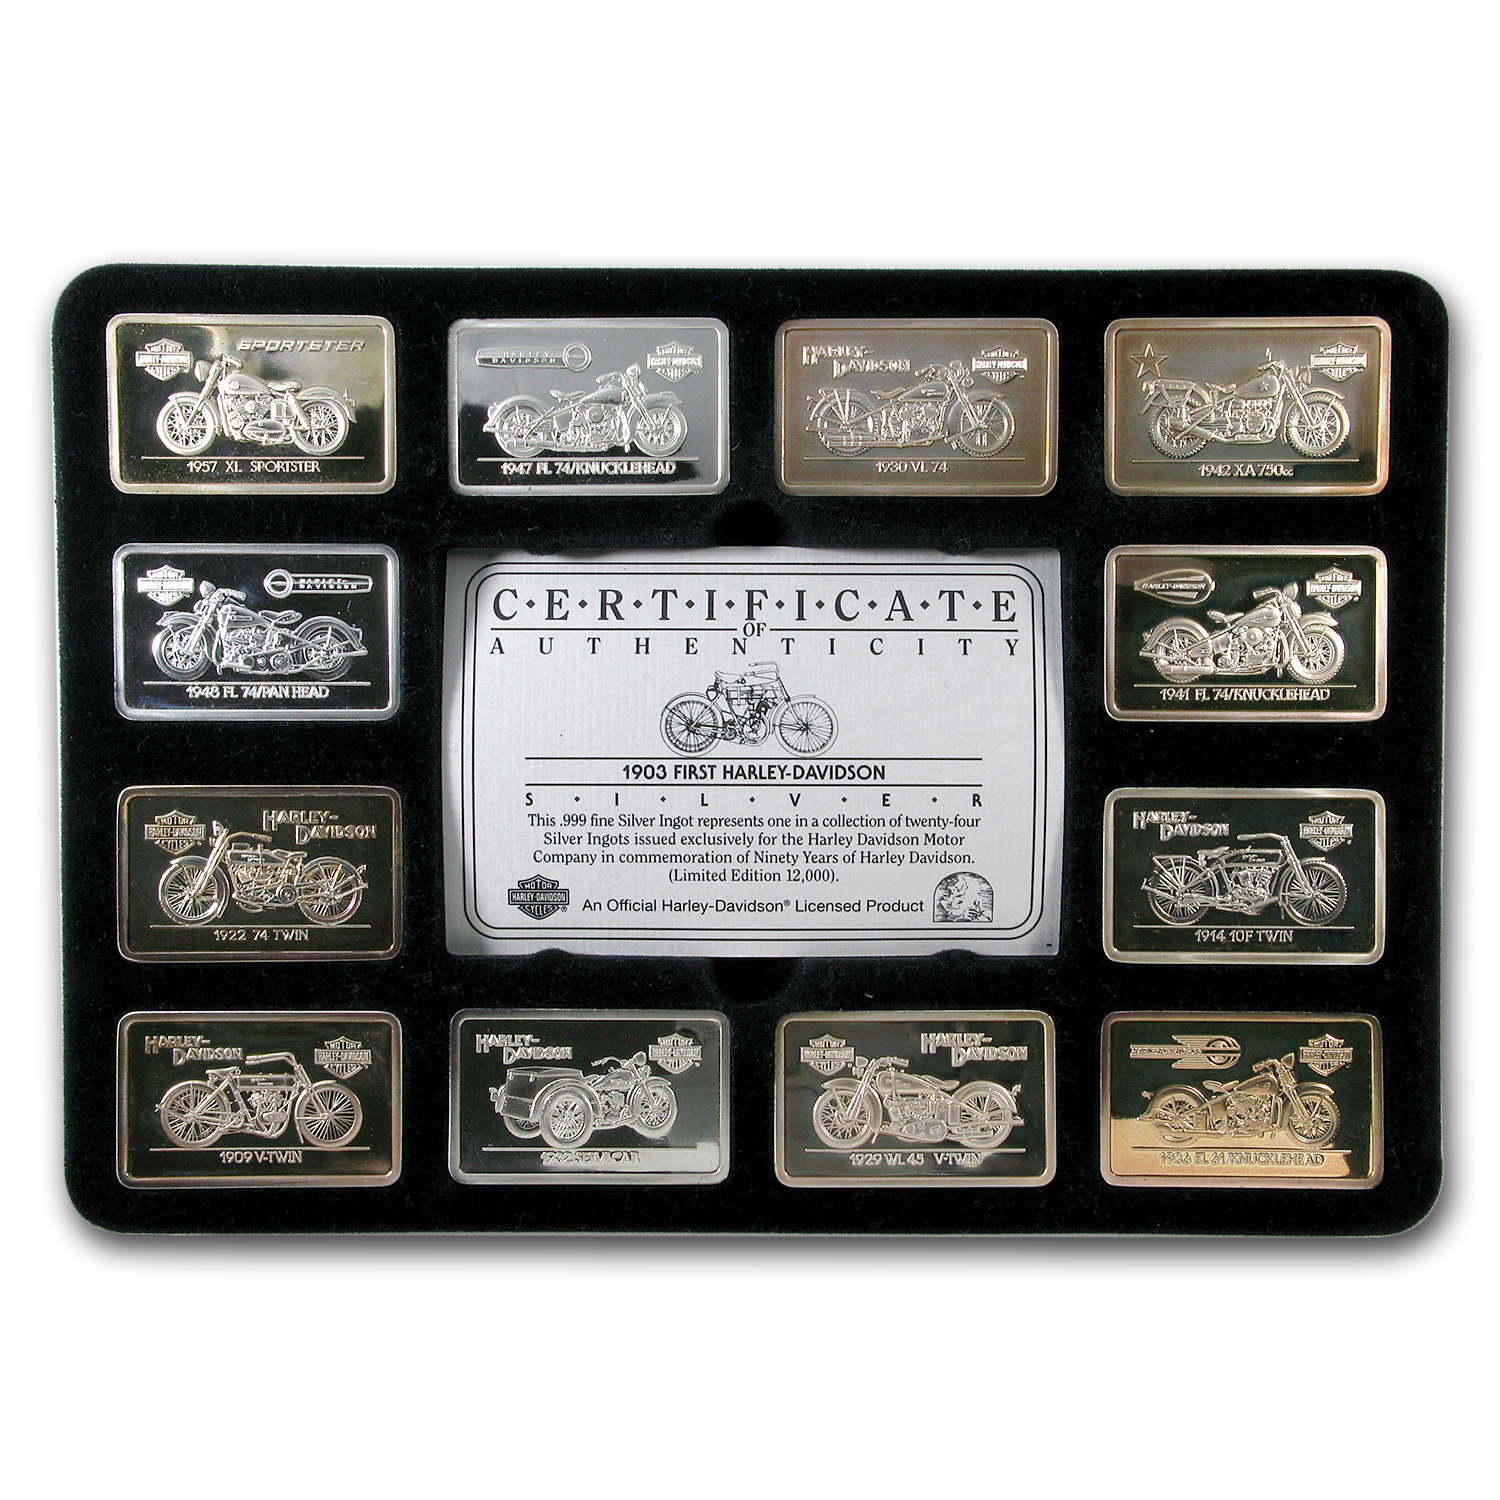 (24) 1.4 oz Silver Bars - 90th Anniv. HARLEY DAVIDSON (Set)